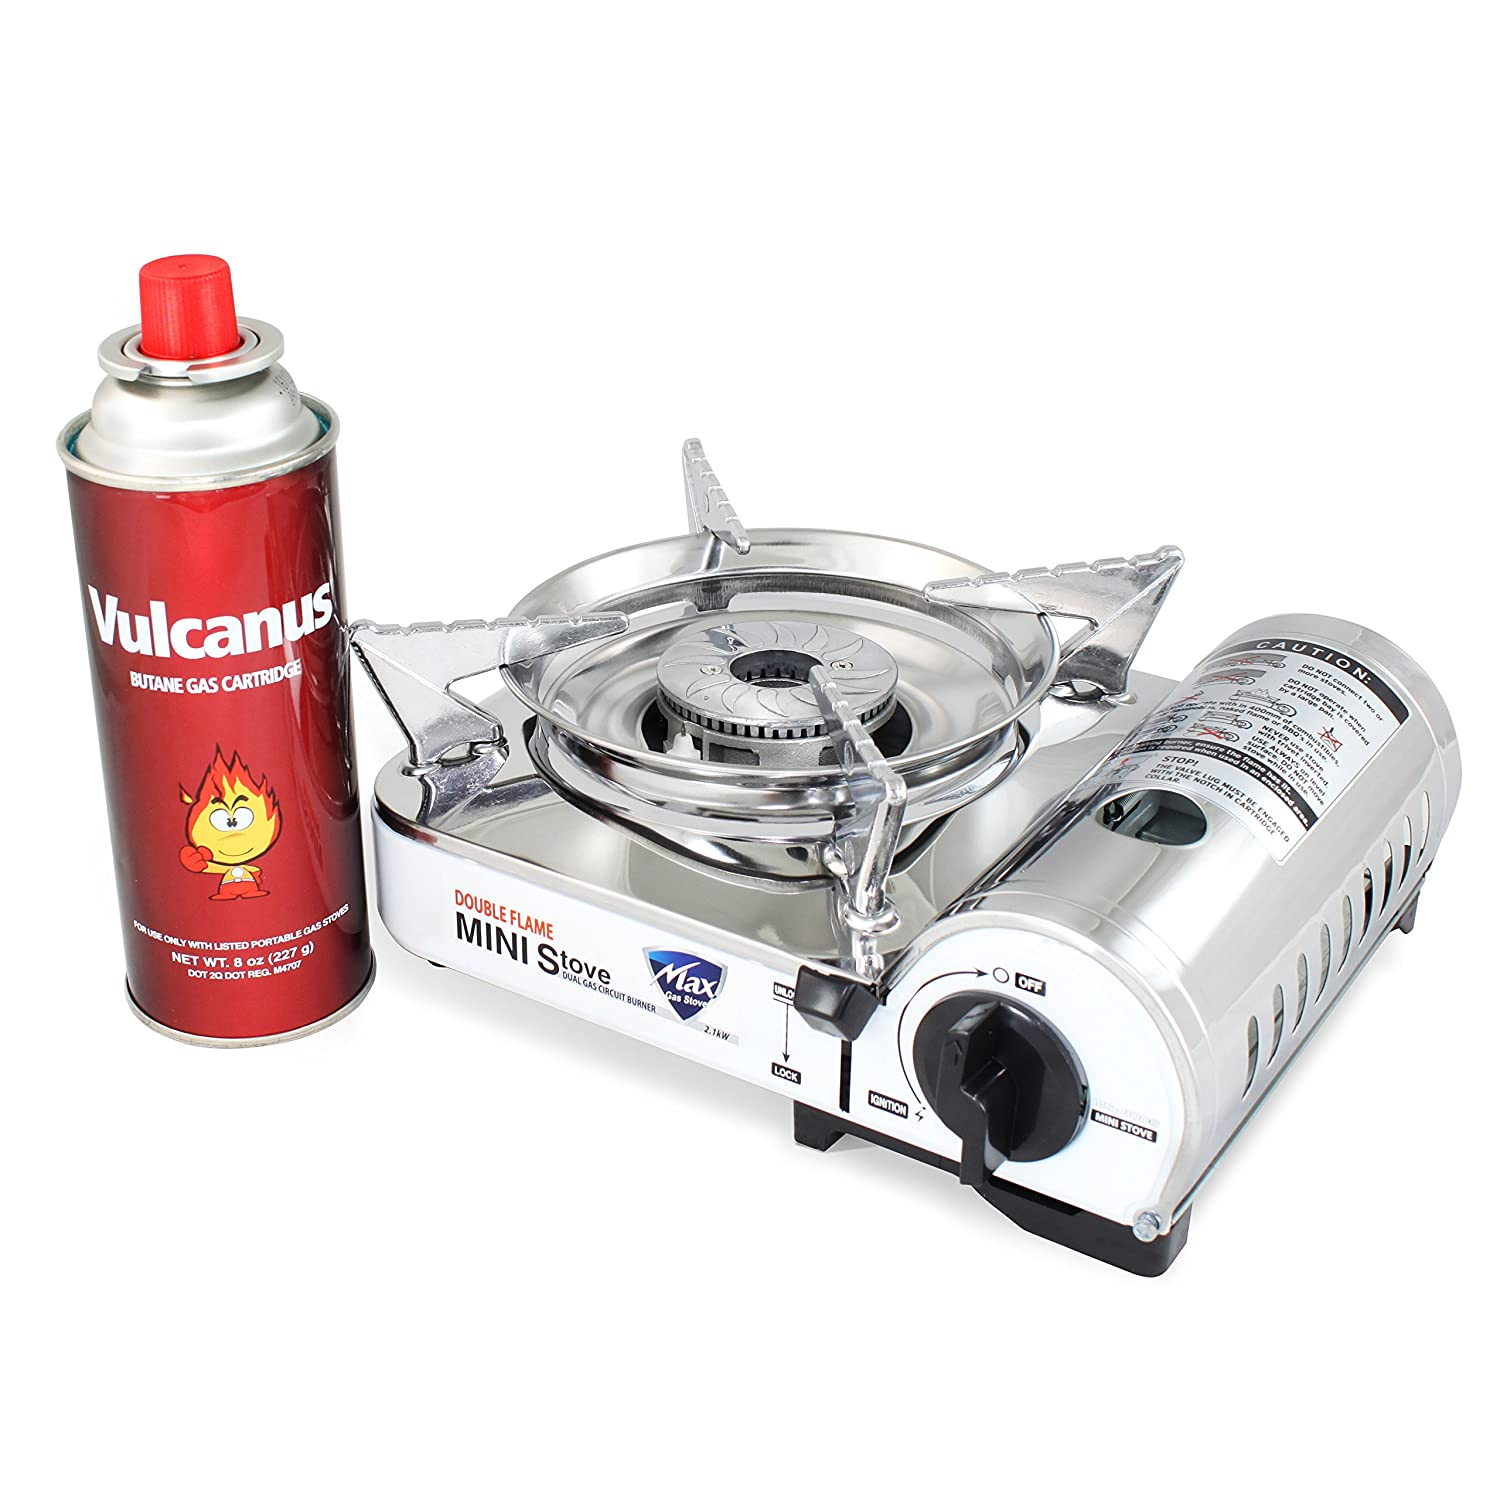 Vulcanus MS-8000 Mini Butane Gas Stove, Stainless Steel top plaet. 9.6 x 8 x 3.9 Gas-1 Butane Gas Cartridge 1-CAN